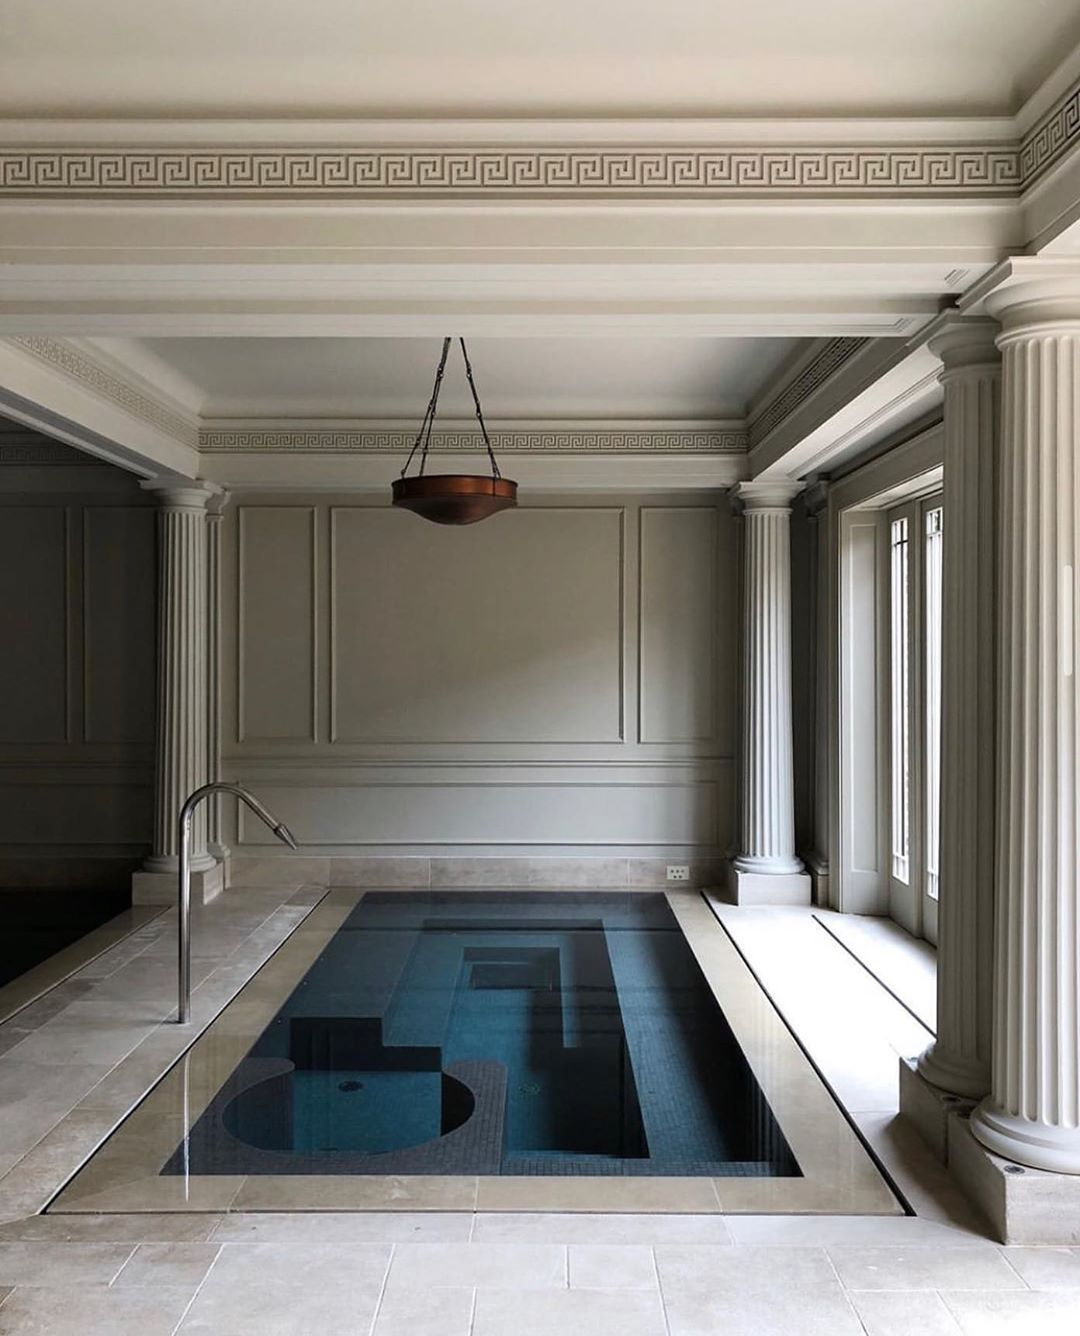 4 034 Likes 10 Comments Steffan Steffan On Instagram An Indoor Swimming Pool Roehampton England Designed House Design Home Victorian Interior Design